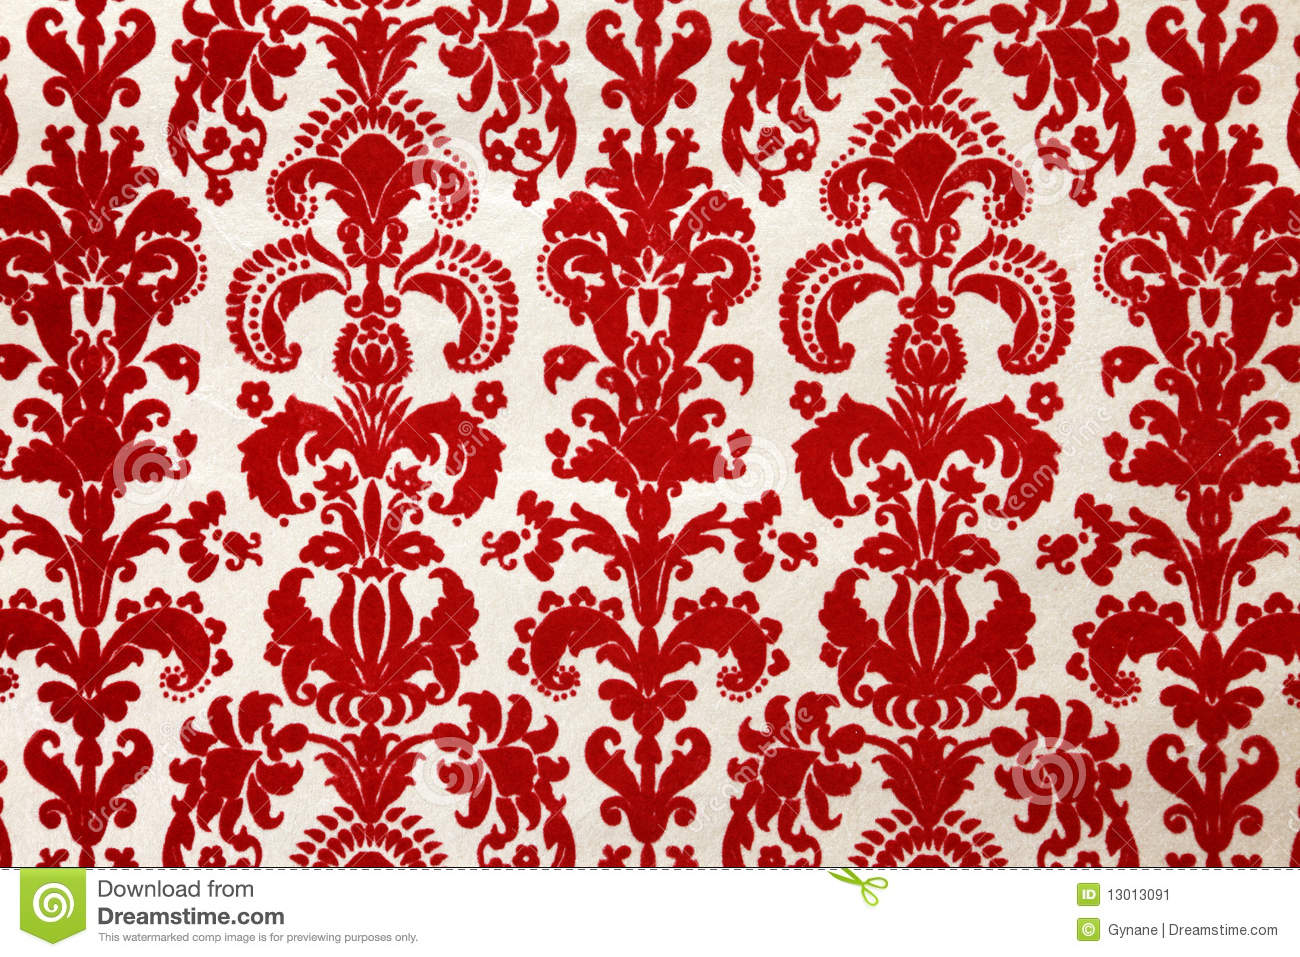 Stock Image Red Flock Wallpaper Pattern Image13013091 on art deco architecture